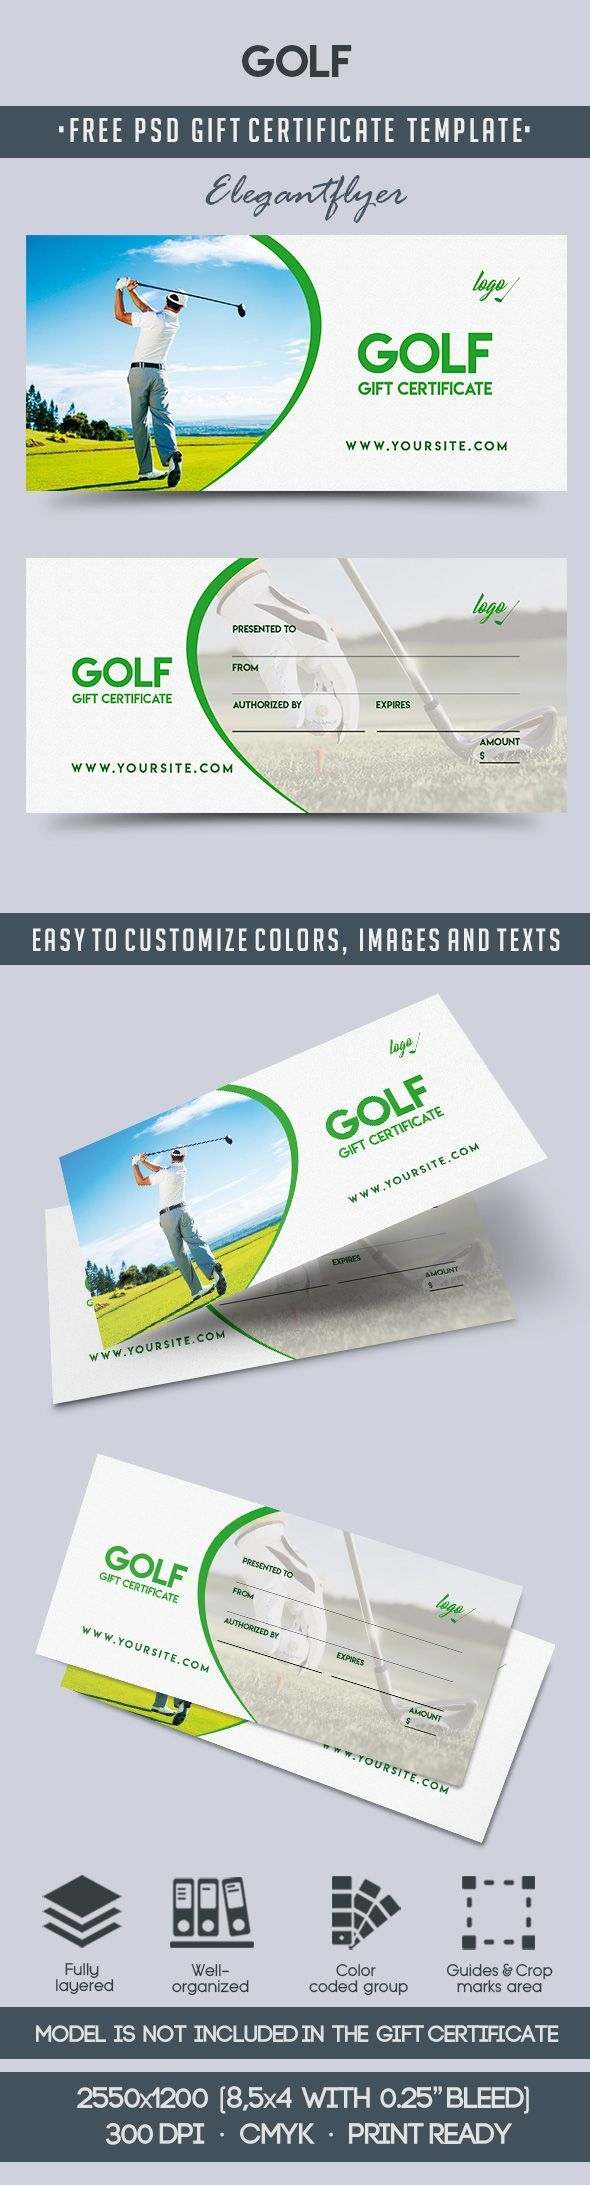 gift certificate template golf